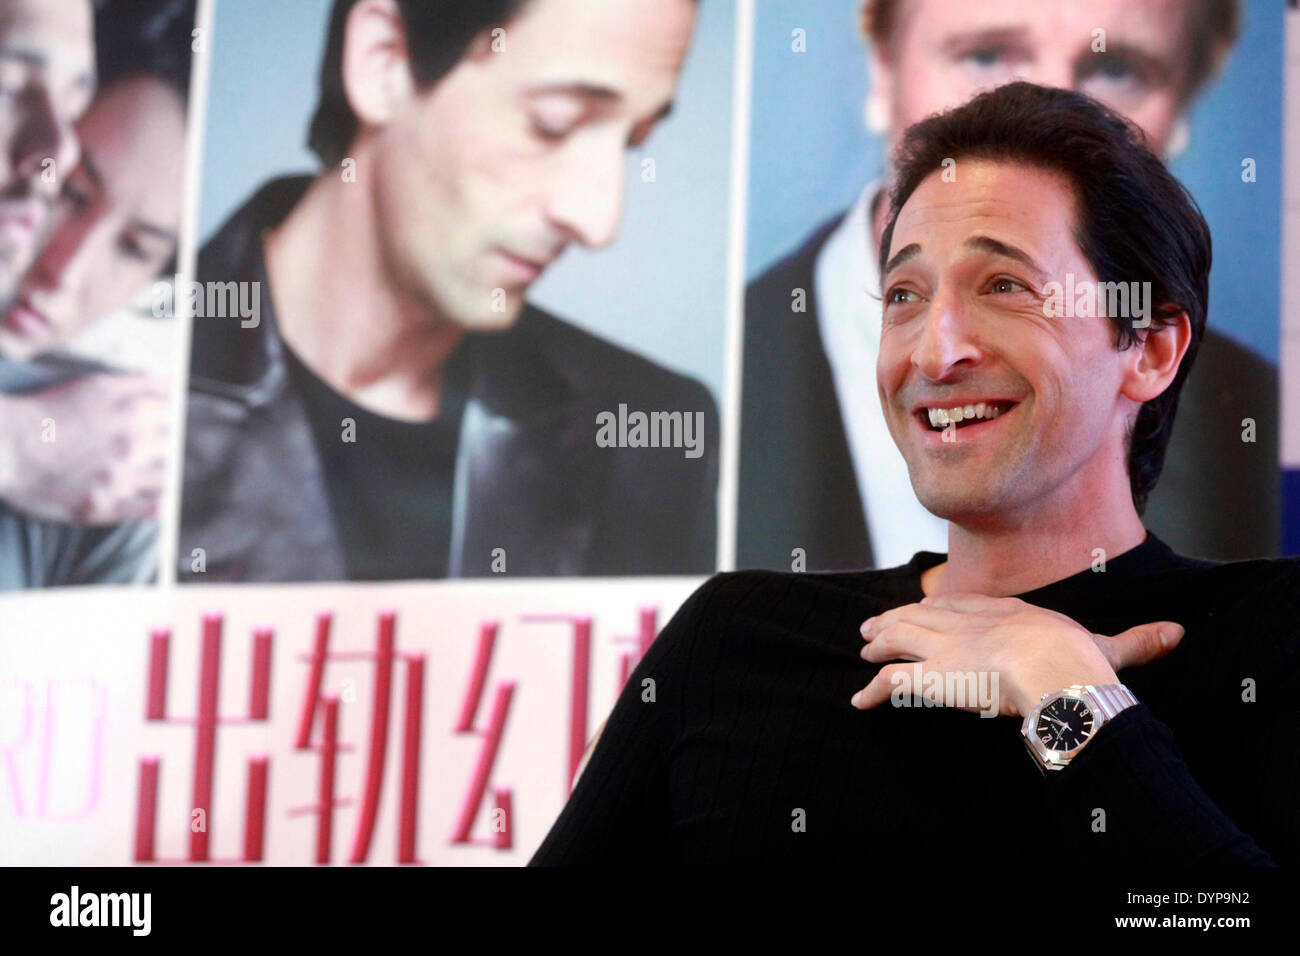 Beijing, China. 23rd Apr, 2014. Actor Adrien Brody smiles during a press conference for 'Third Person' at the 4th Beijing International Film Festival in Beijing, capital of China, April 23, 2014. © Zhang Yu/Xinhua/Alamy Live News - Stock Image